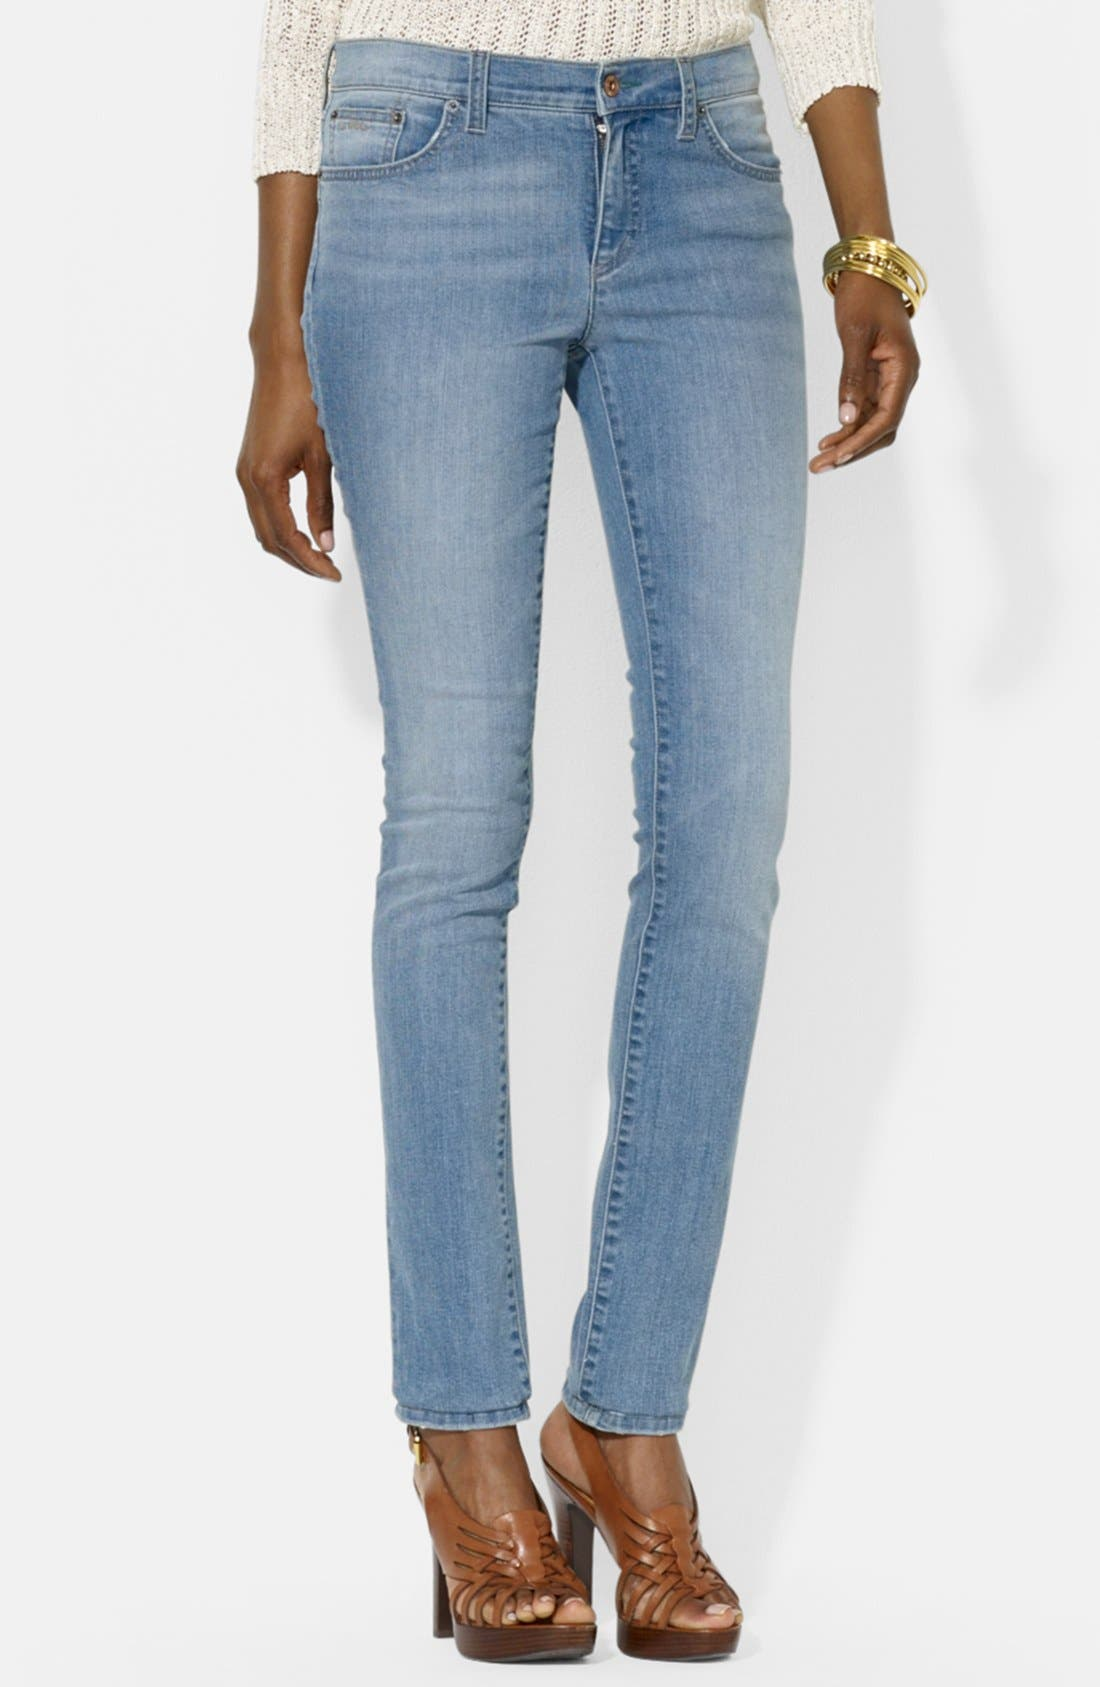 Alternate Image 1 Selected - Lauren Ralph Lauren Modern Skinny Jeans (Peak) (Petite)